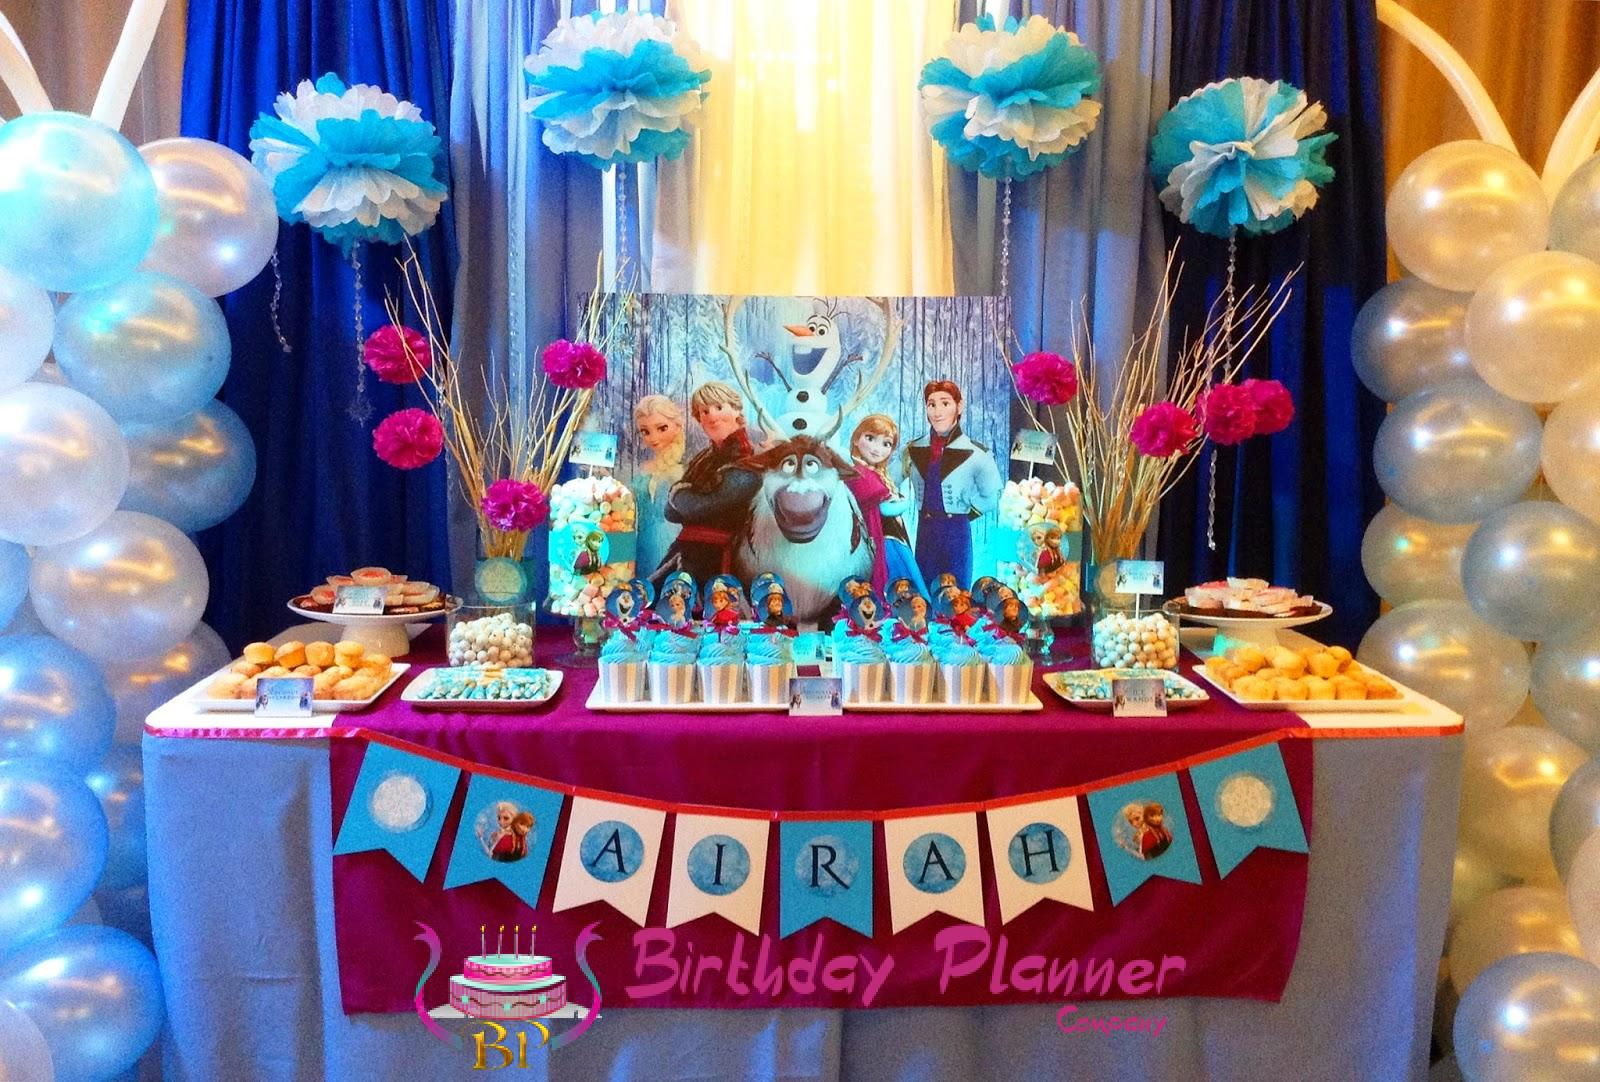 Frozen Theme Party Planner | Decoration | Birthday Organizer in Delhi